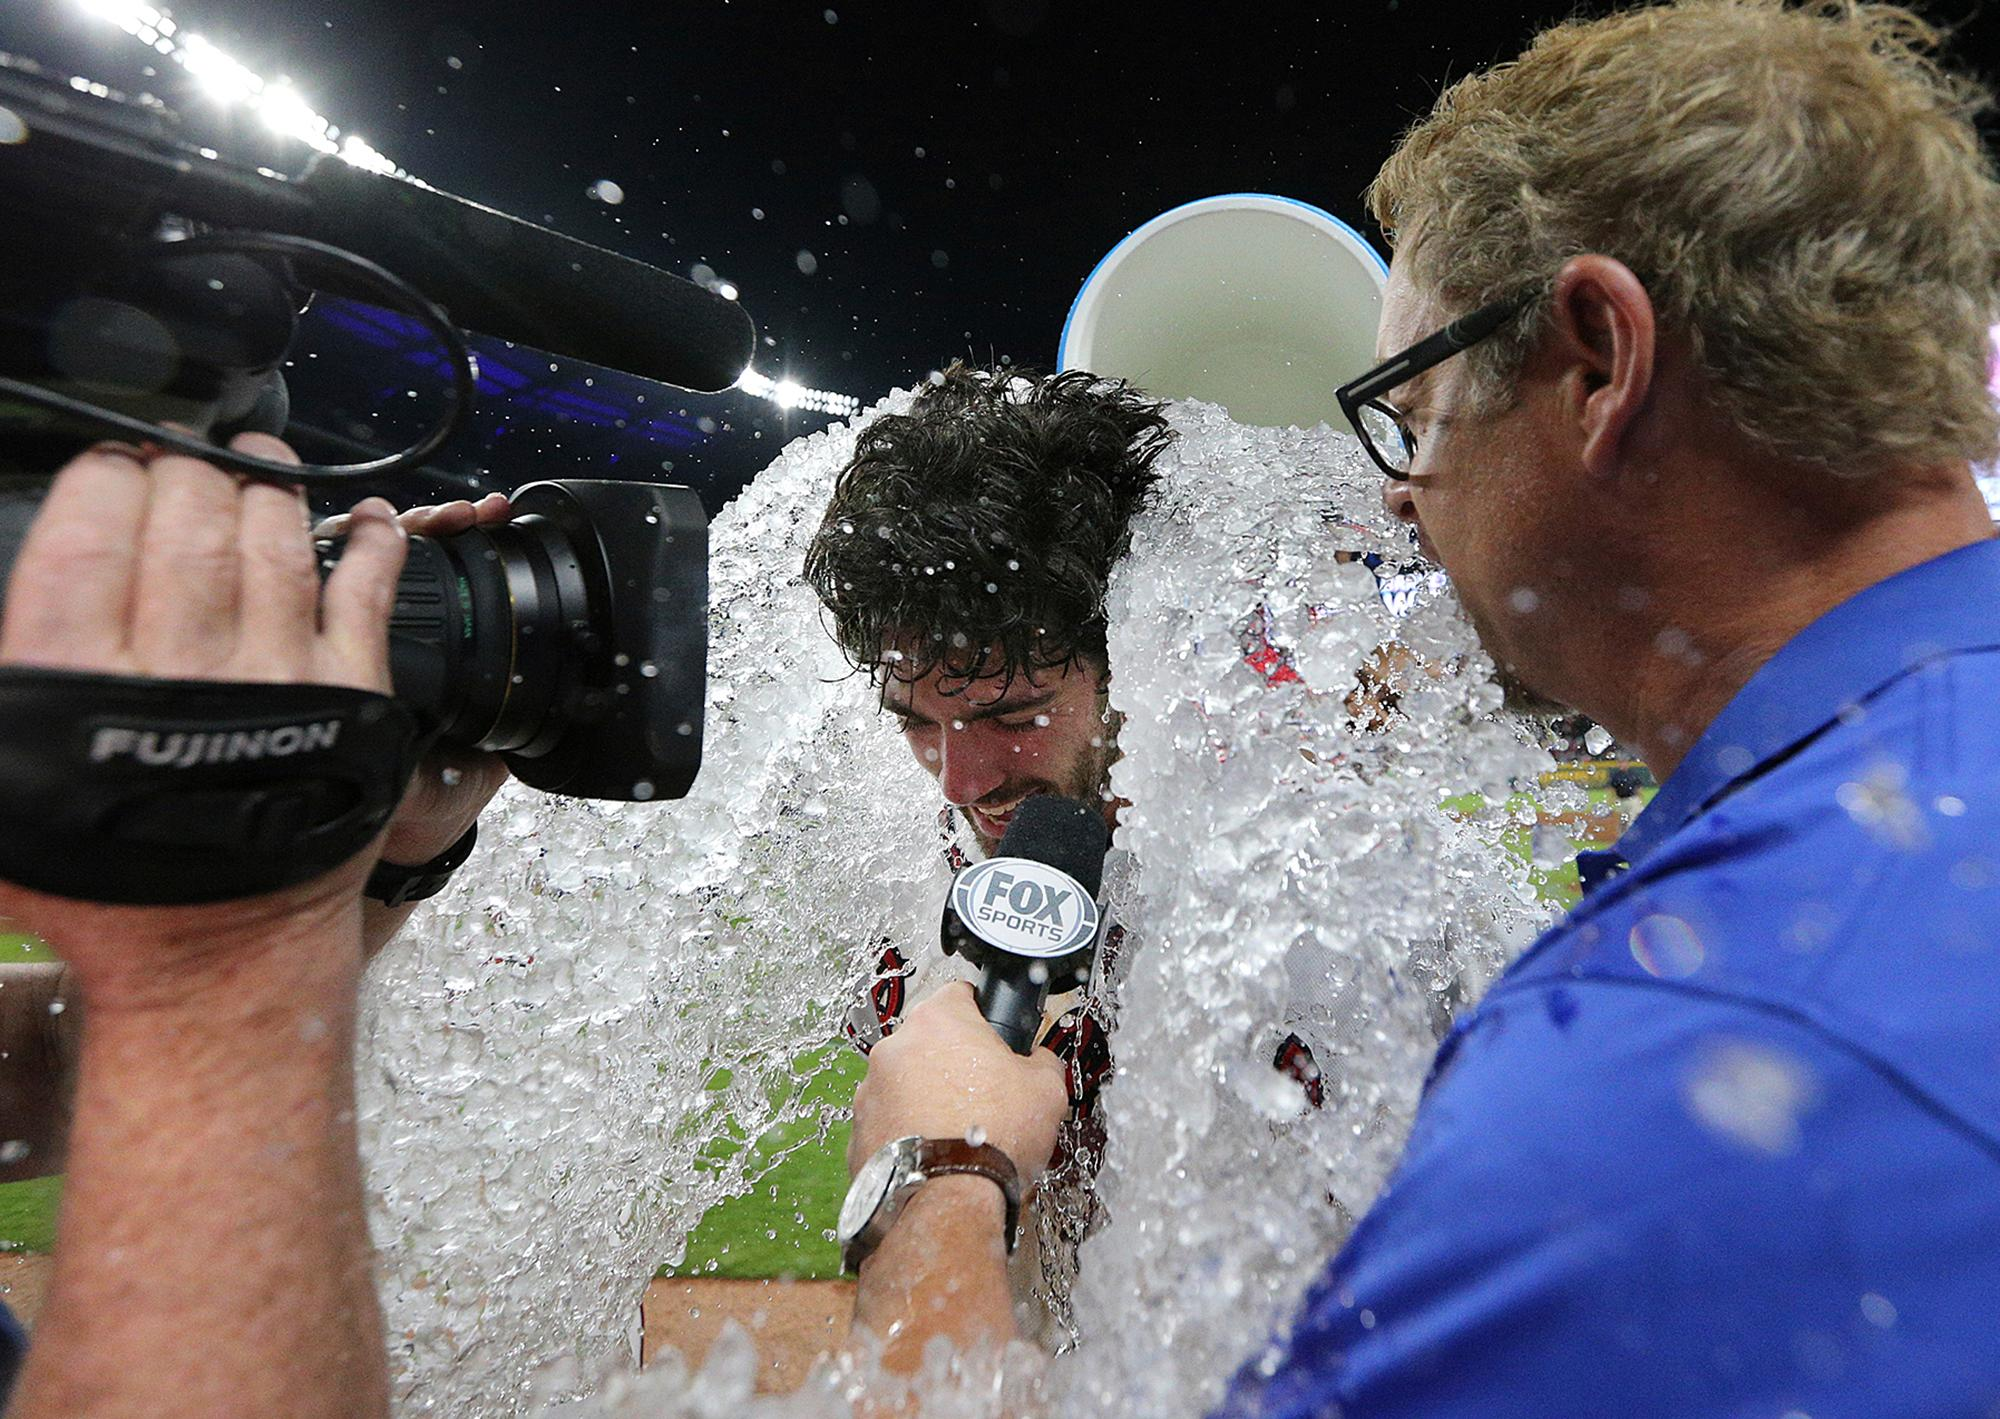 Adonis Garcia douses Atlanta Braves' Dansby Swanson with water to celebrate his walk-off single to beat the San Diego Padres, 5-4, at  the end of a baseball game in Atlanta on Monday, April 17, 2017. (Curtis Compton/Atlanta Journal-Constitution via AP)